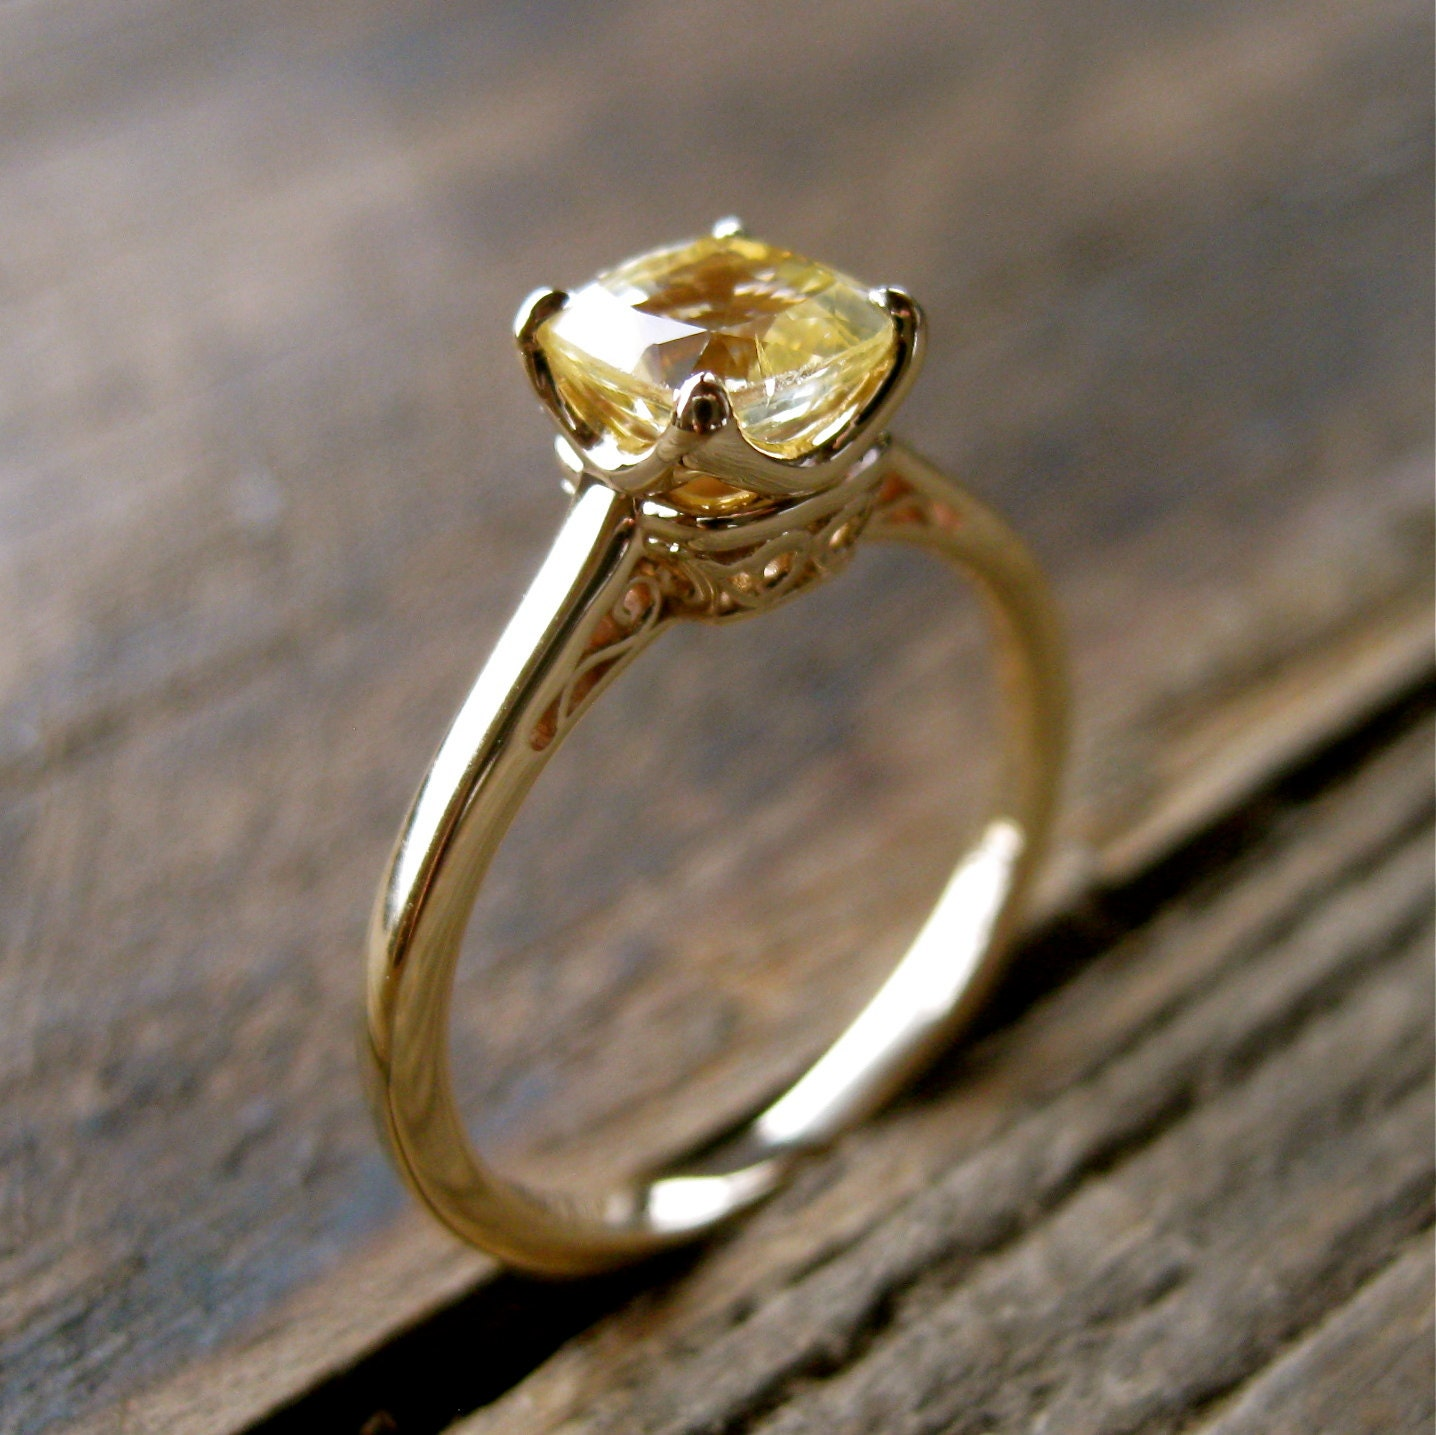 cushion cut yellow sapphire engagement ring in 14k yellow gold